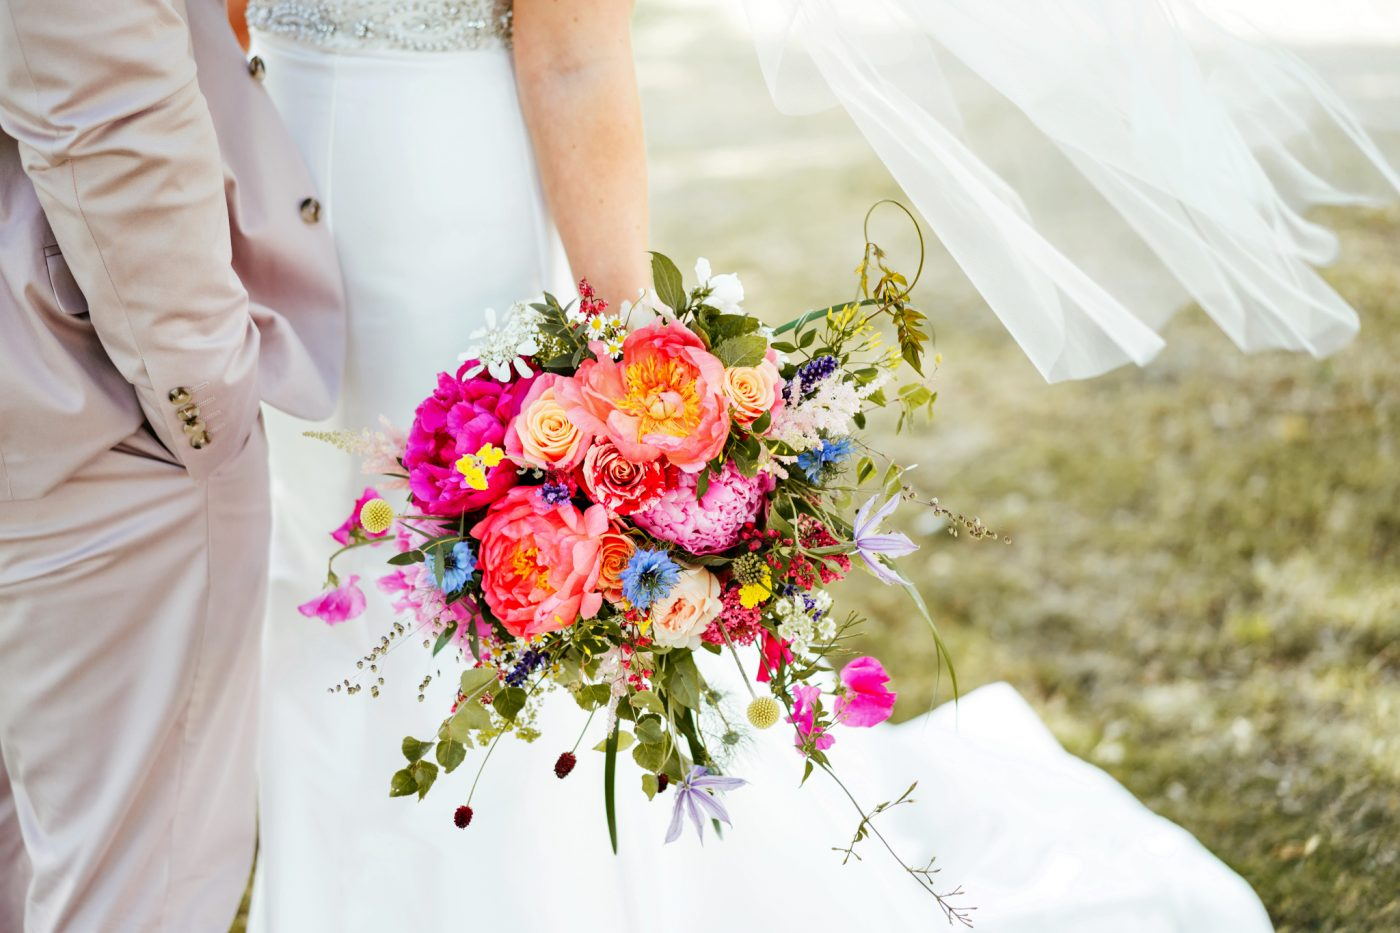 How Much do Wedding Flowers Cost?